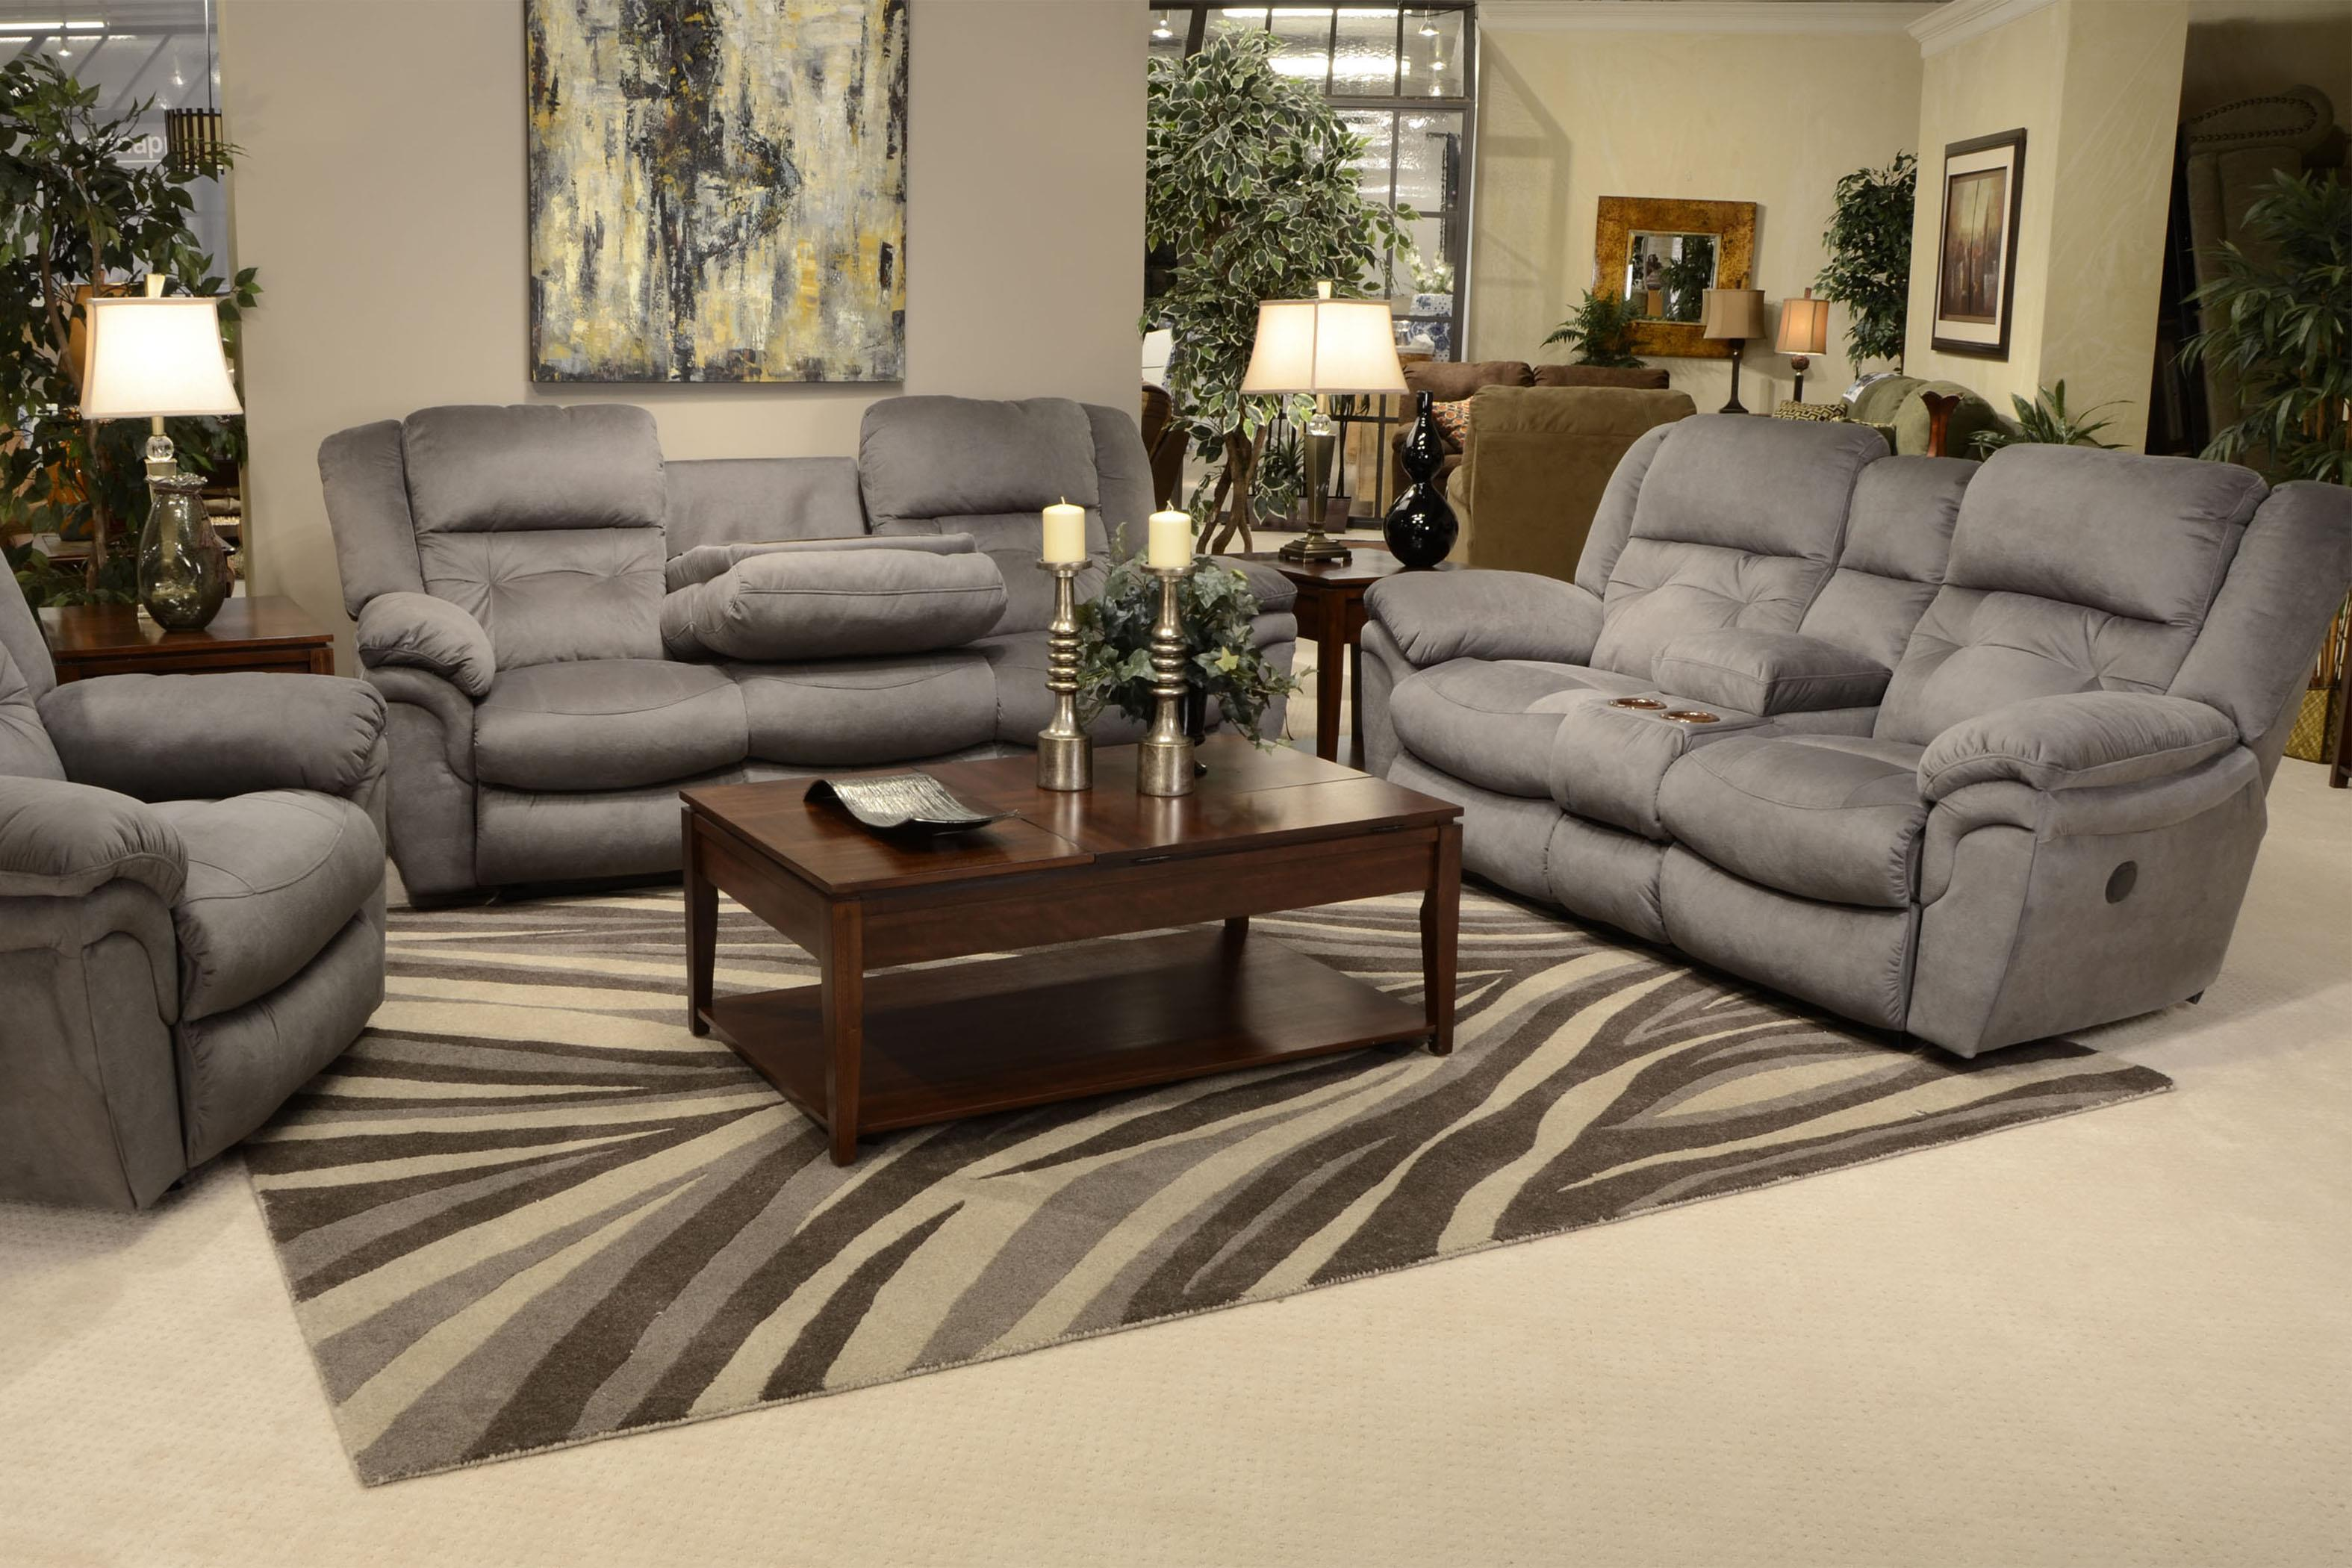 Power Reclining Sofa With Drop Down Table by Catnapper